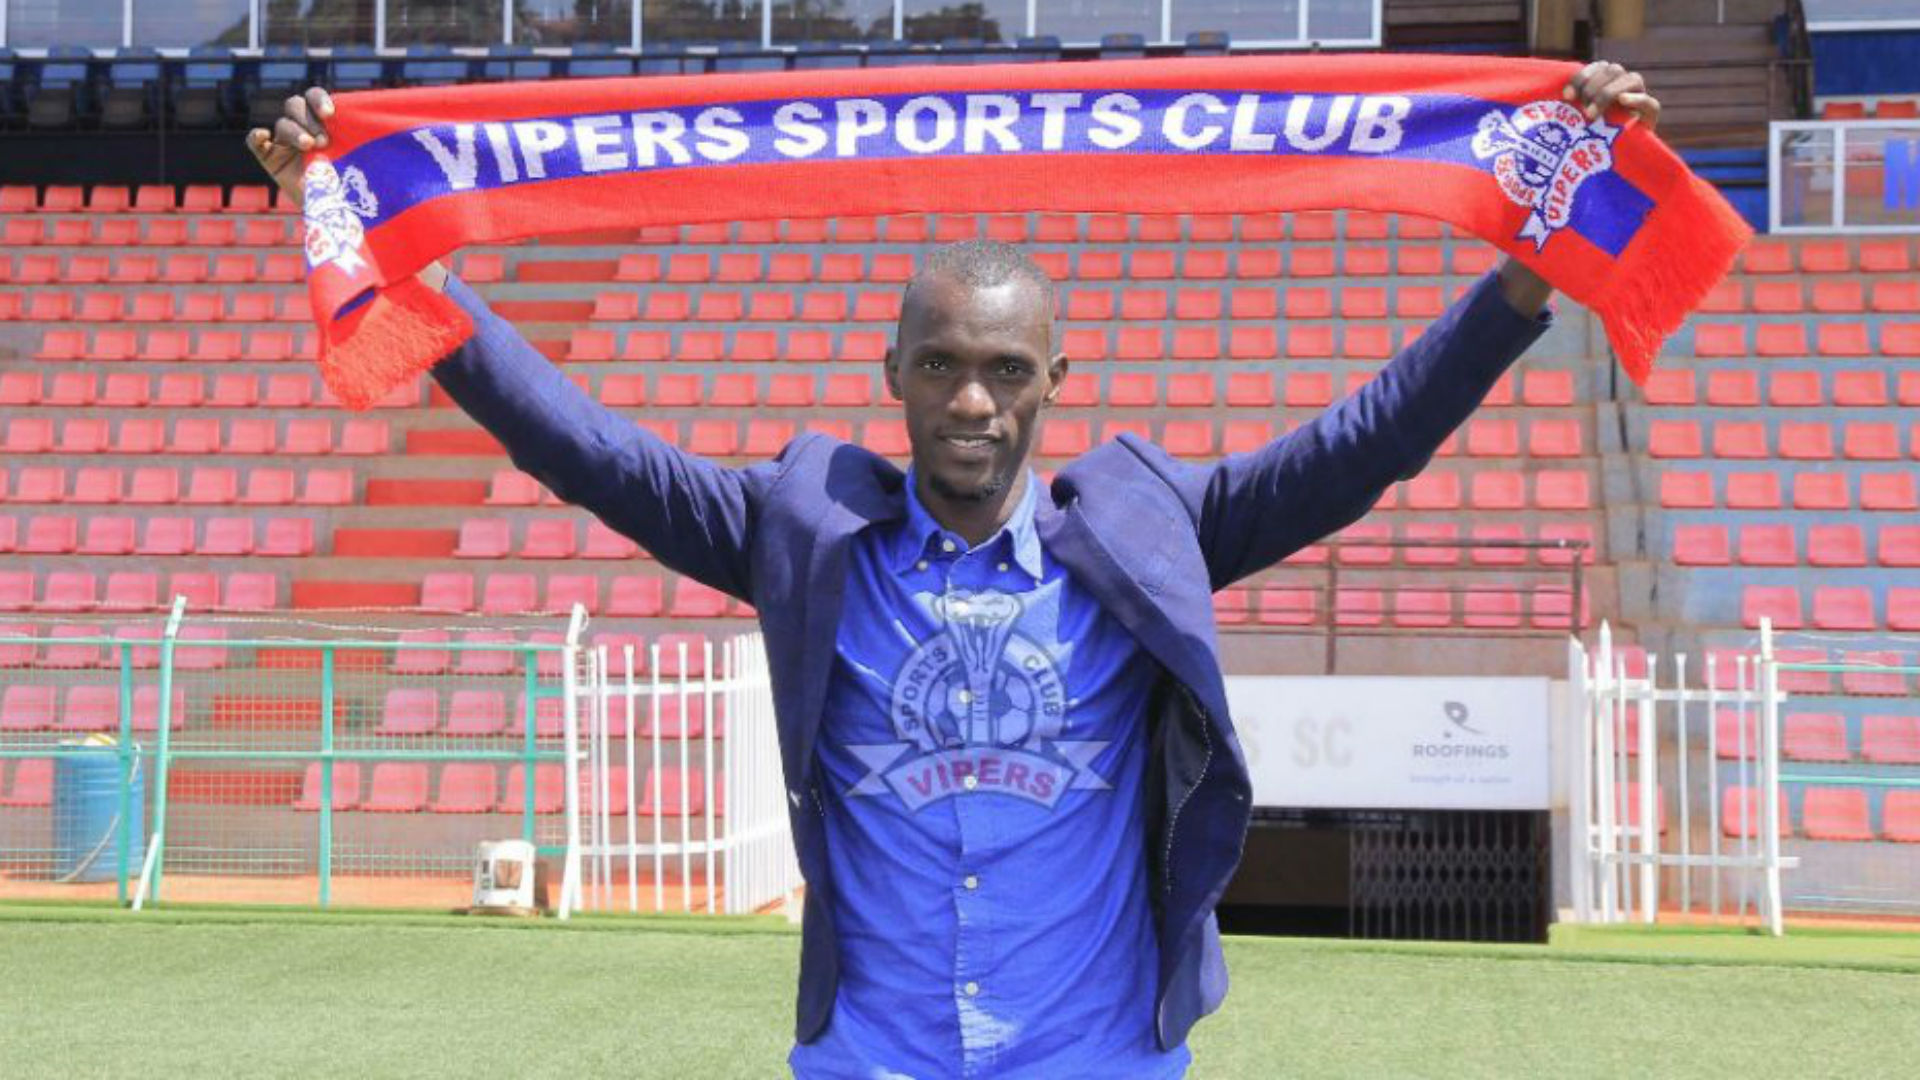 Kalisa: Vipers SC announce third signing this window with Bright Stars midfielder